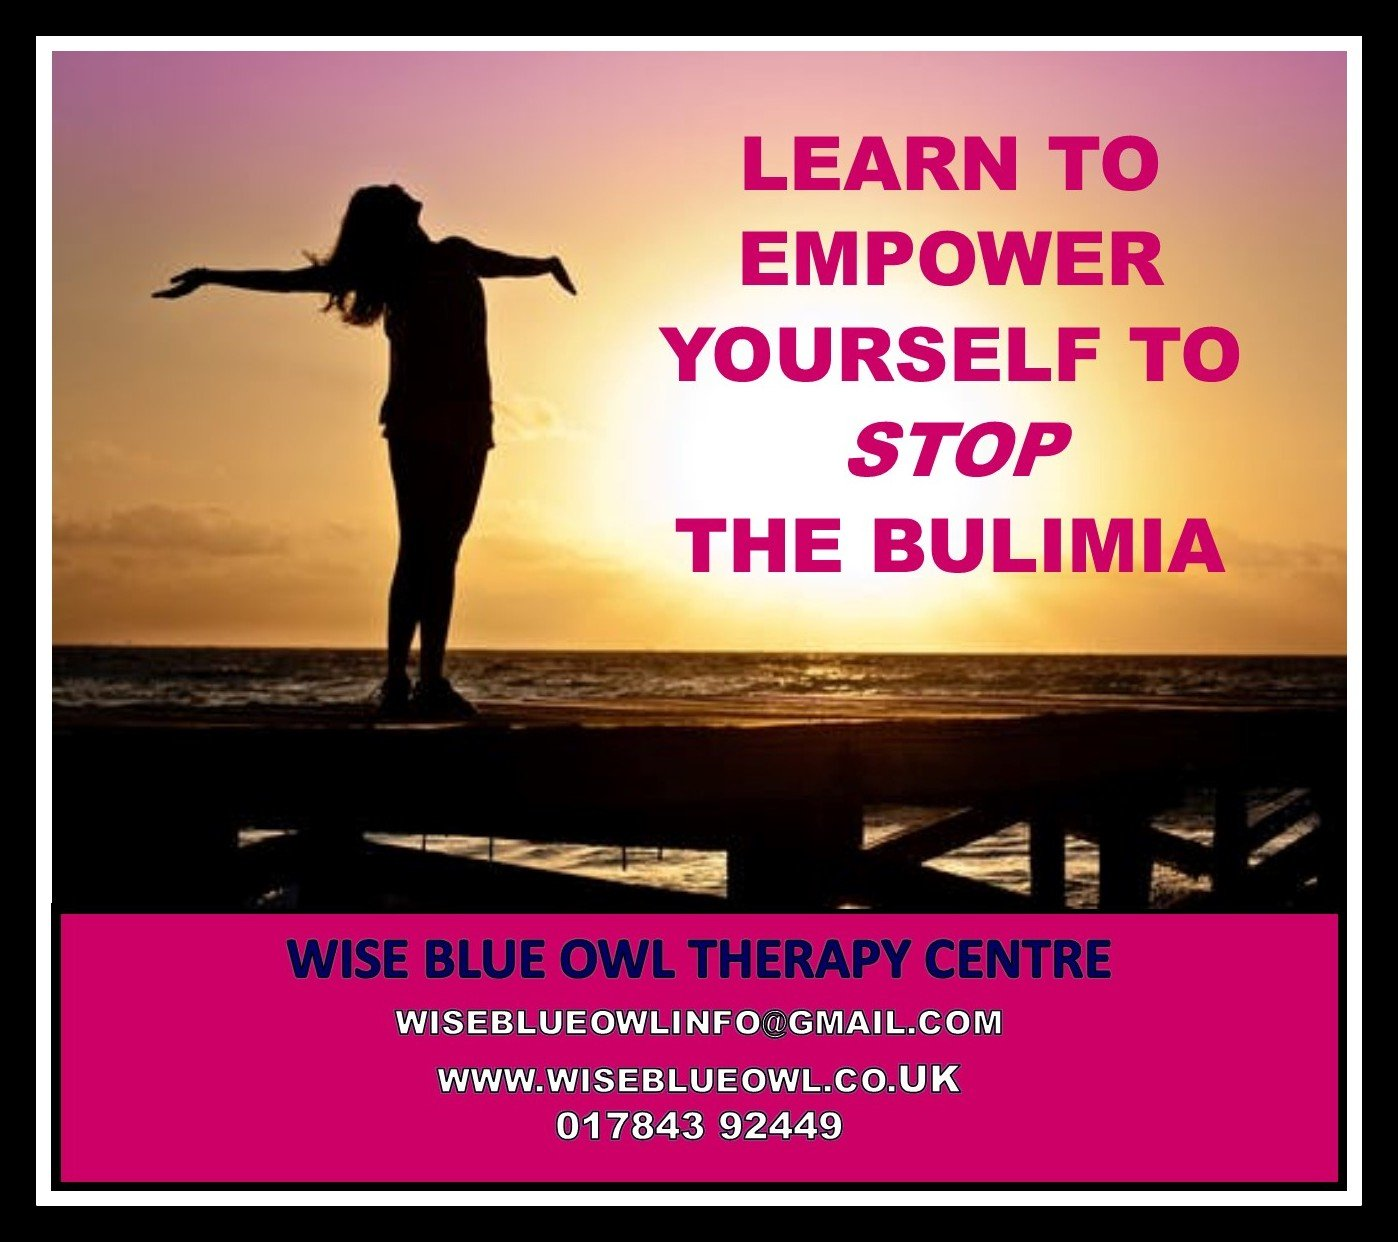 bulimia and eating disorder poster